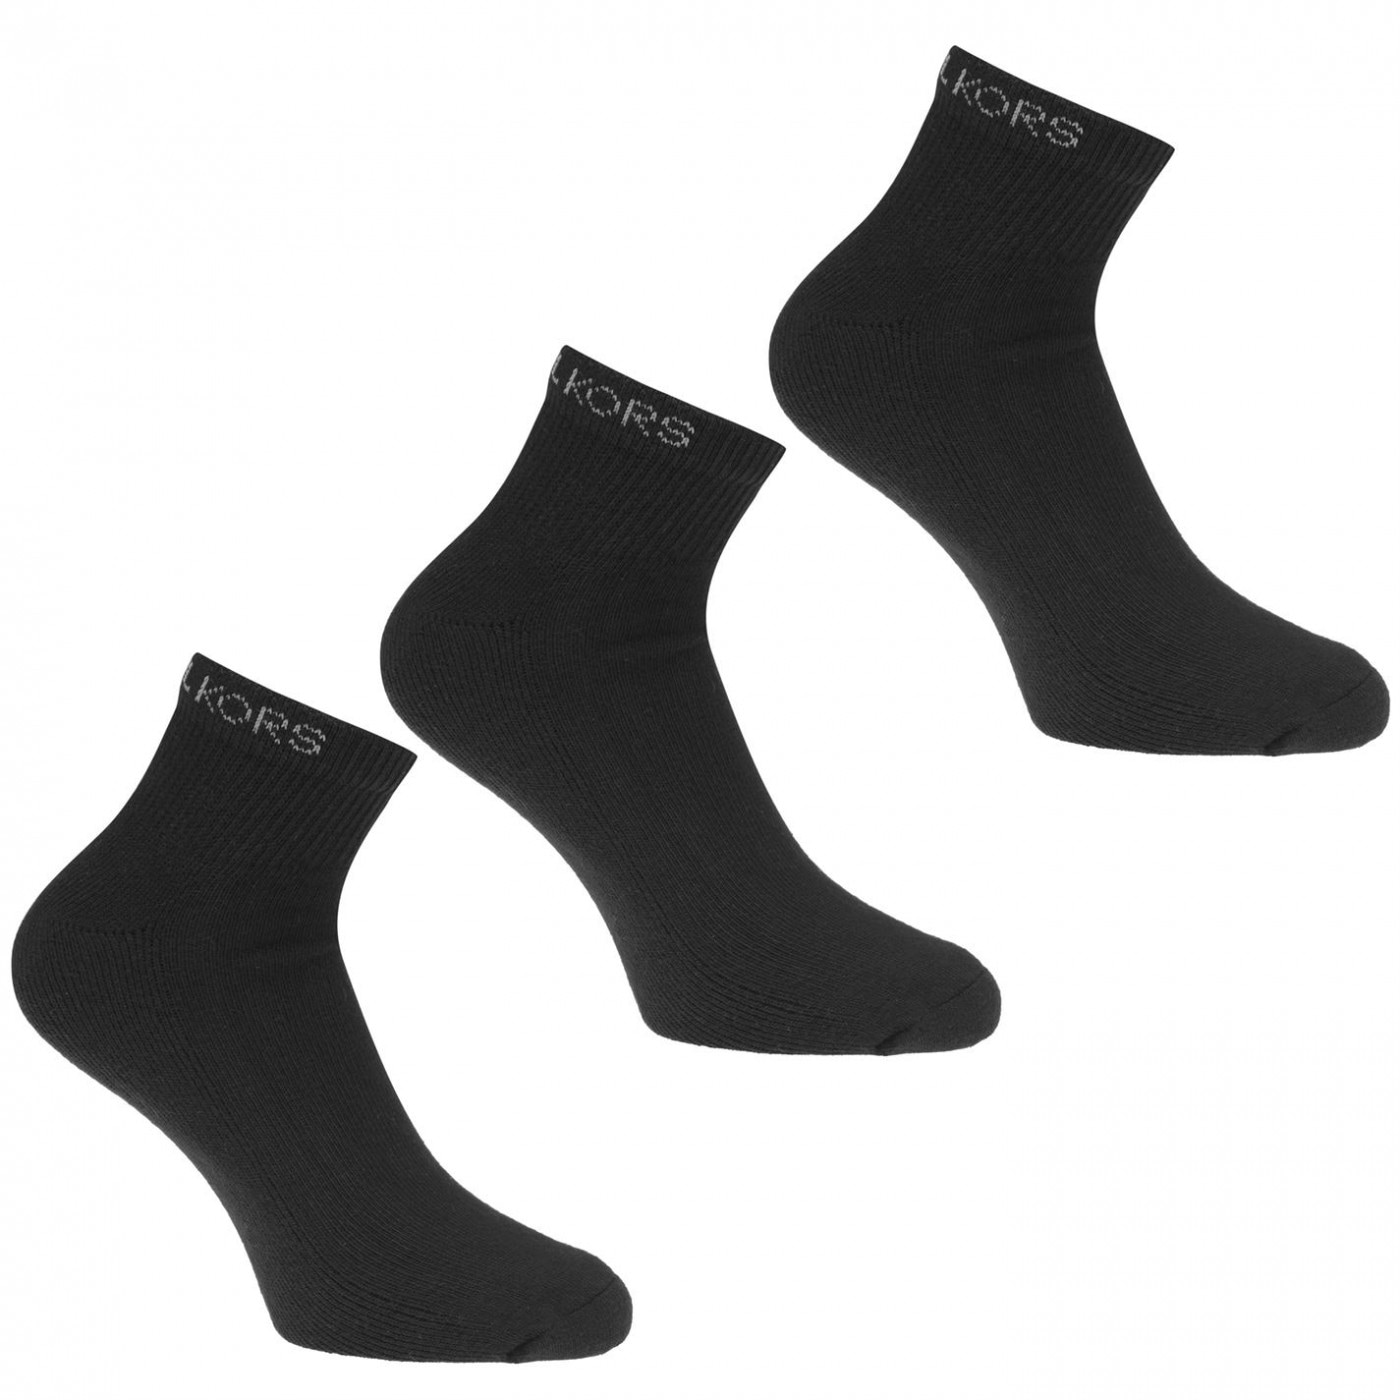 MICHAEL Michael Kors Mens 3 Pack Classic Trainer Socks